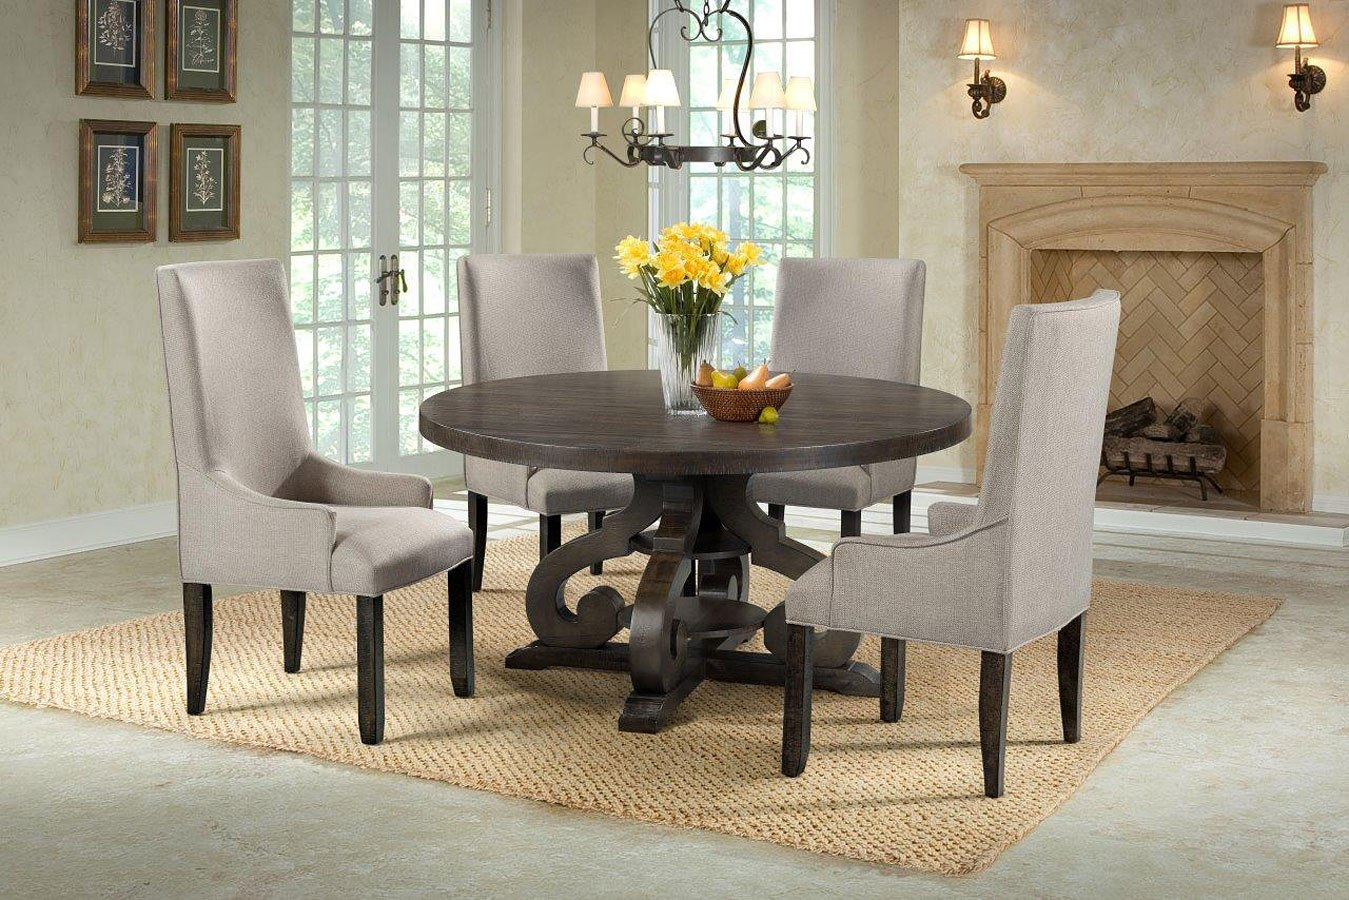 stone  dining room set  upholstered chairs elements furniture furniture cart